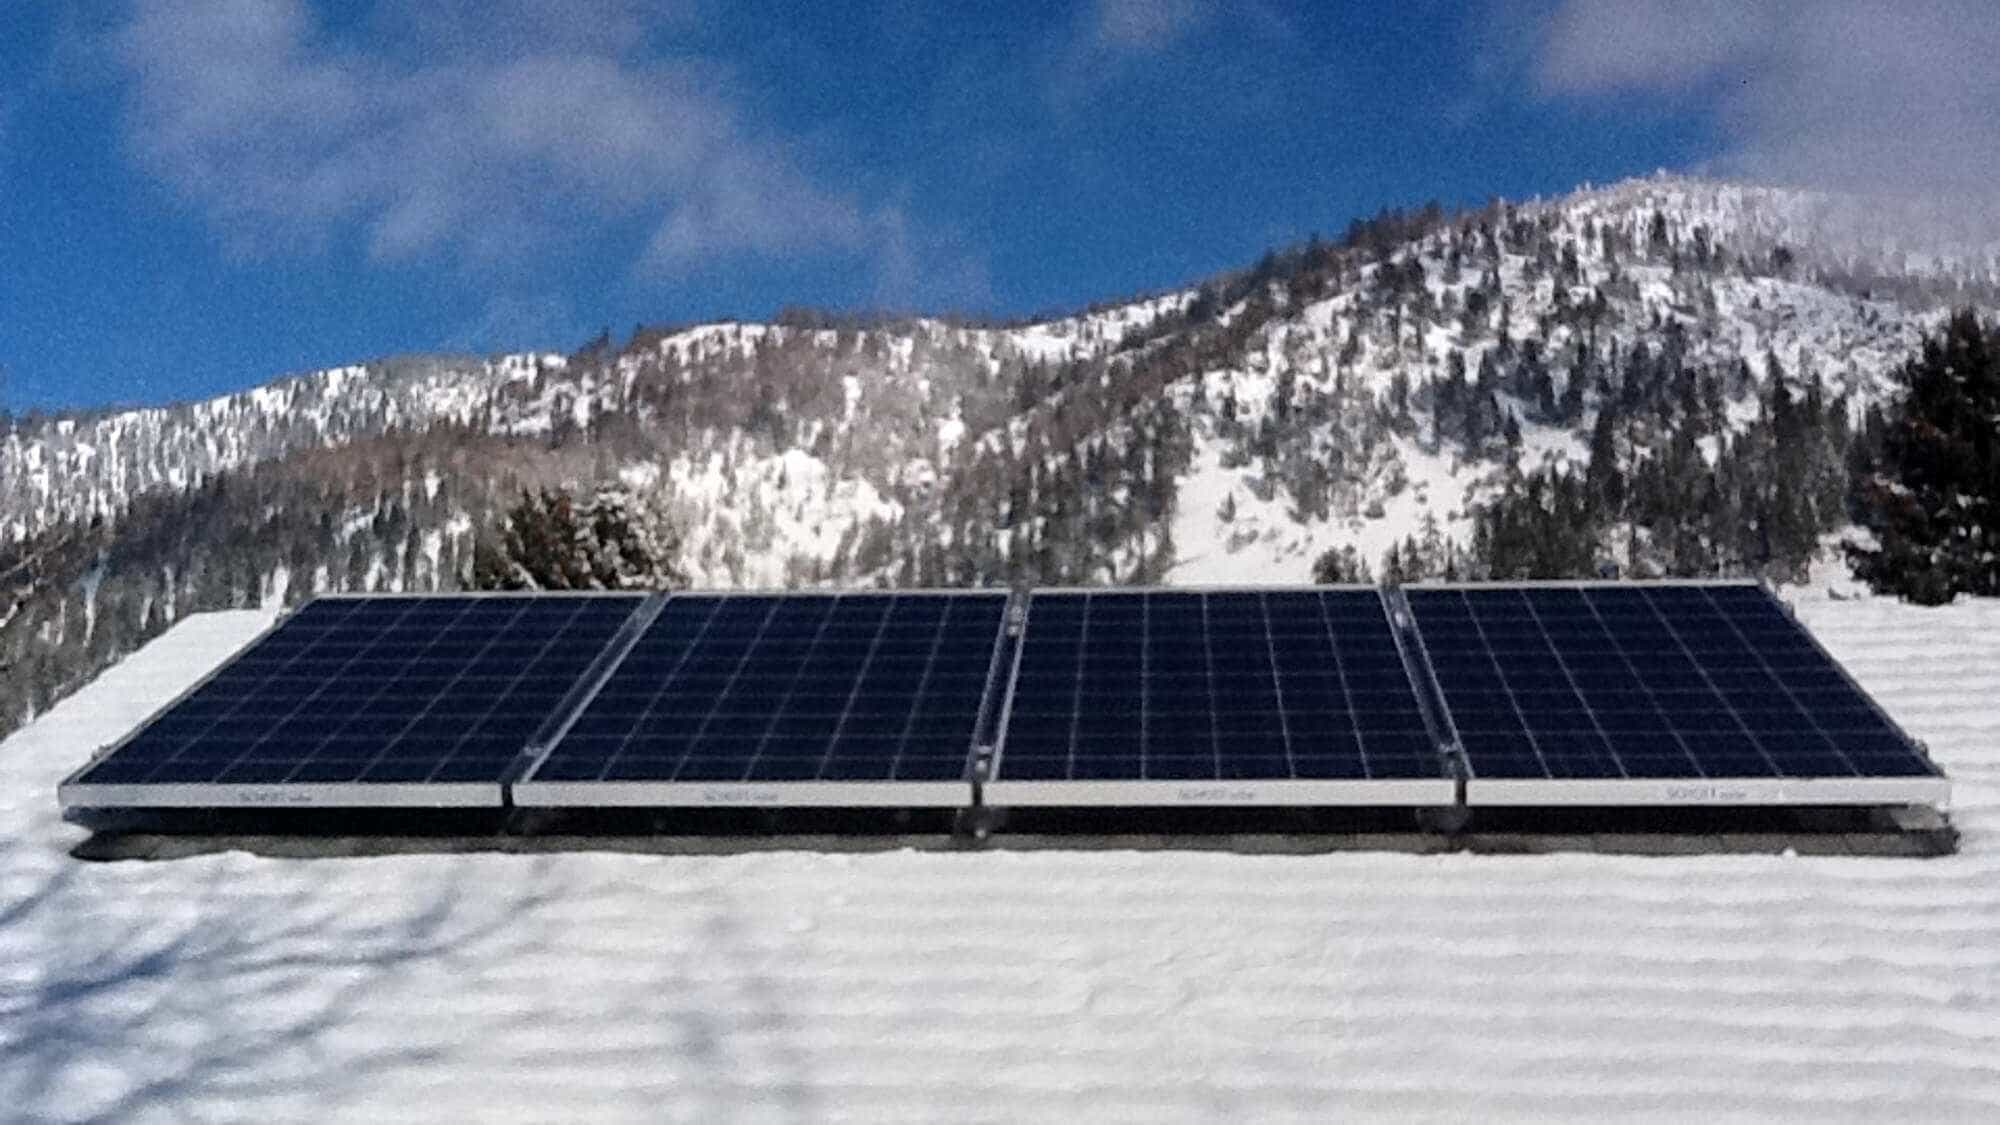 Solar in the snow